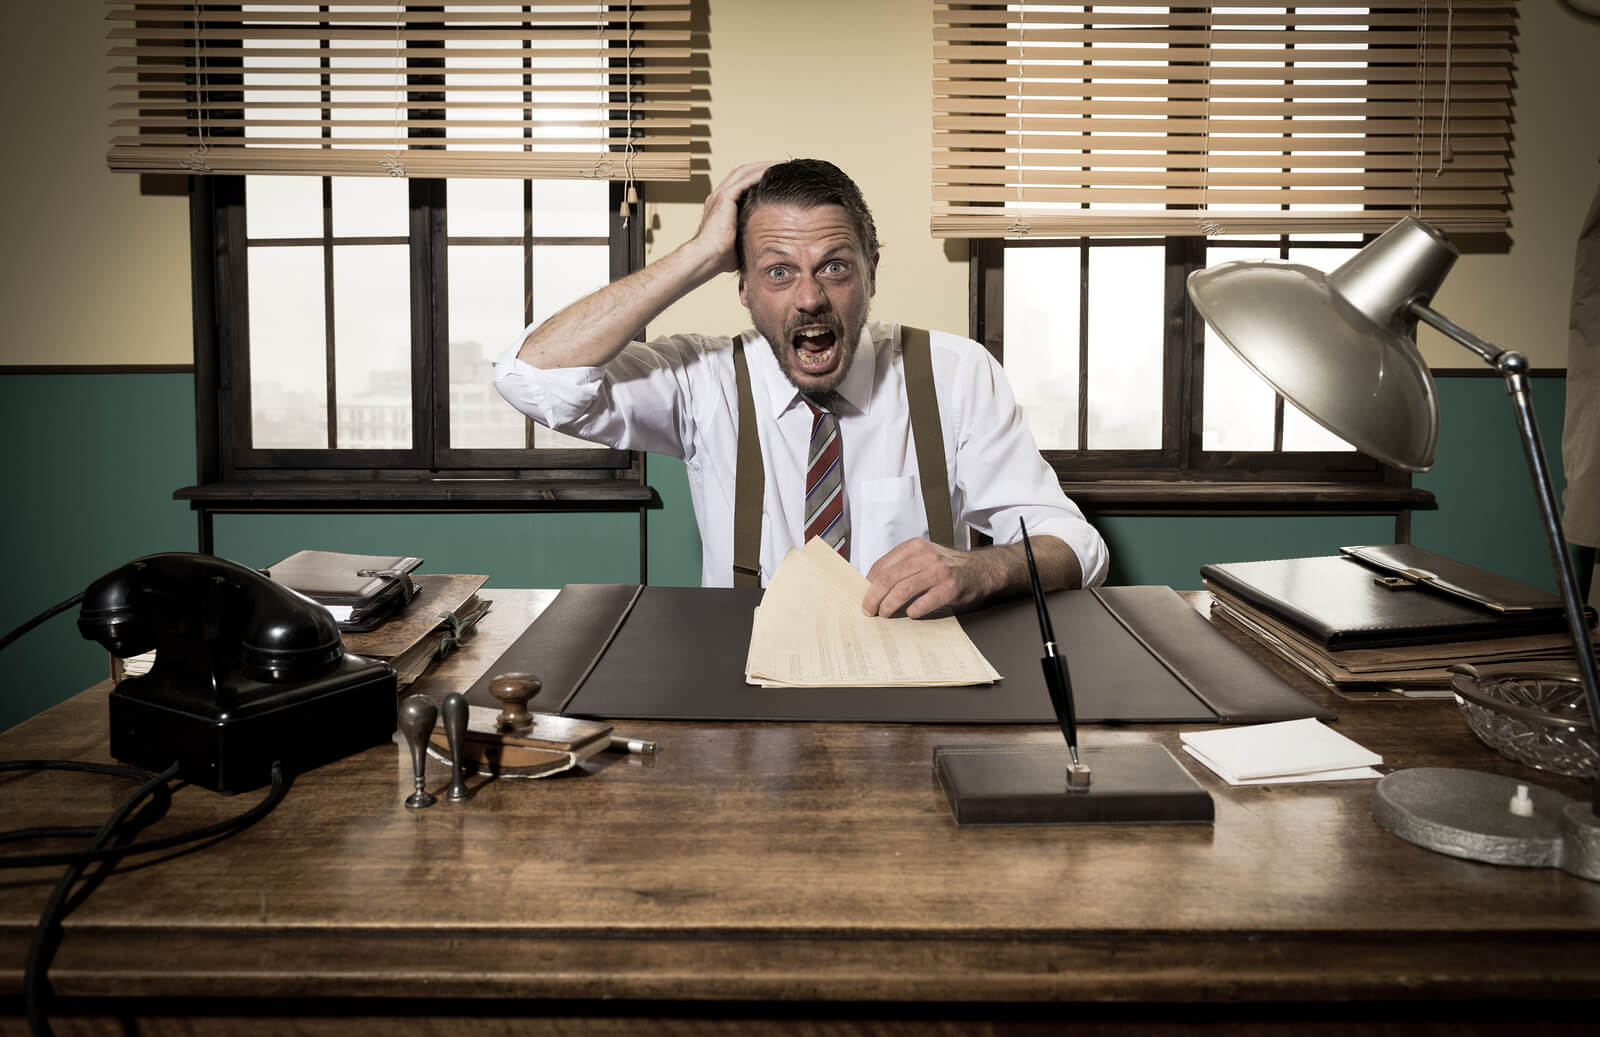 Businessman with mouth open working at desk and checking paperwork.